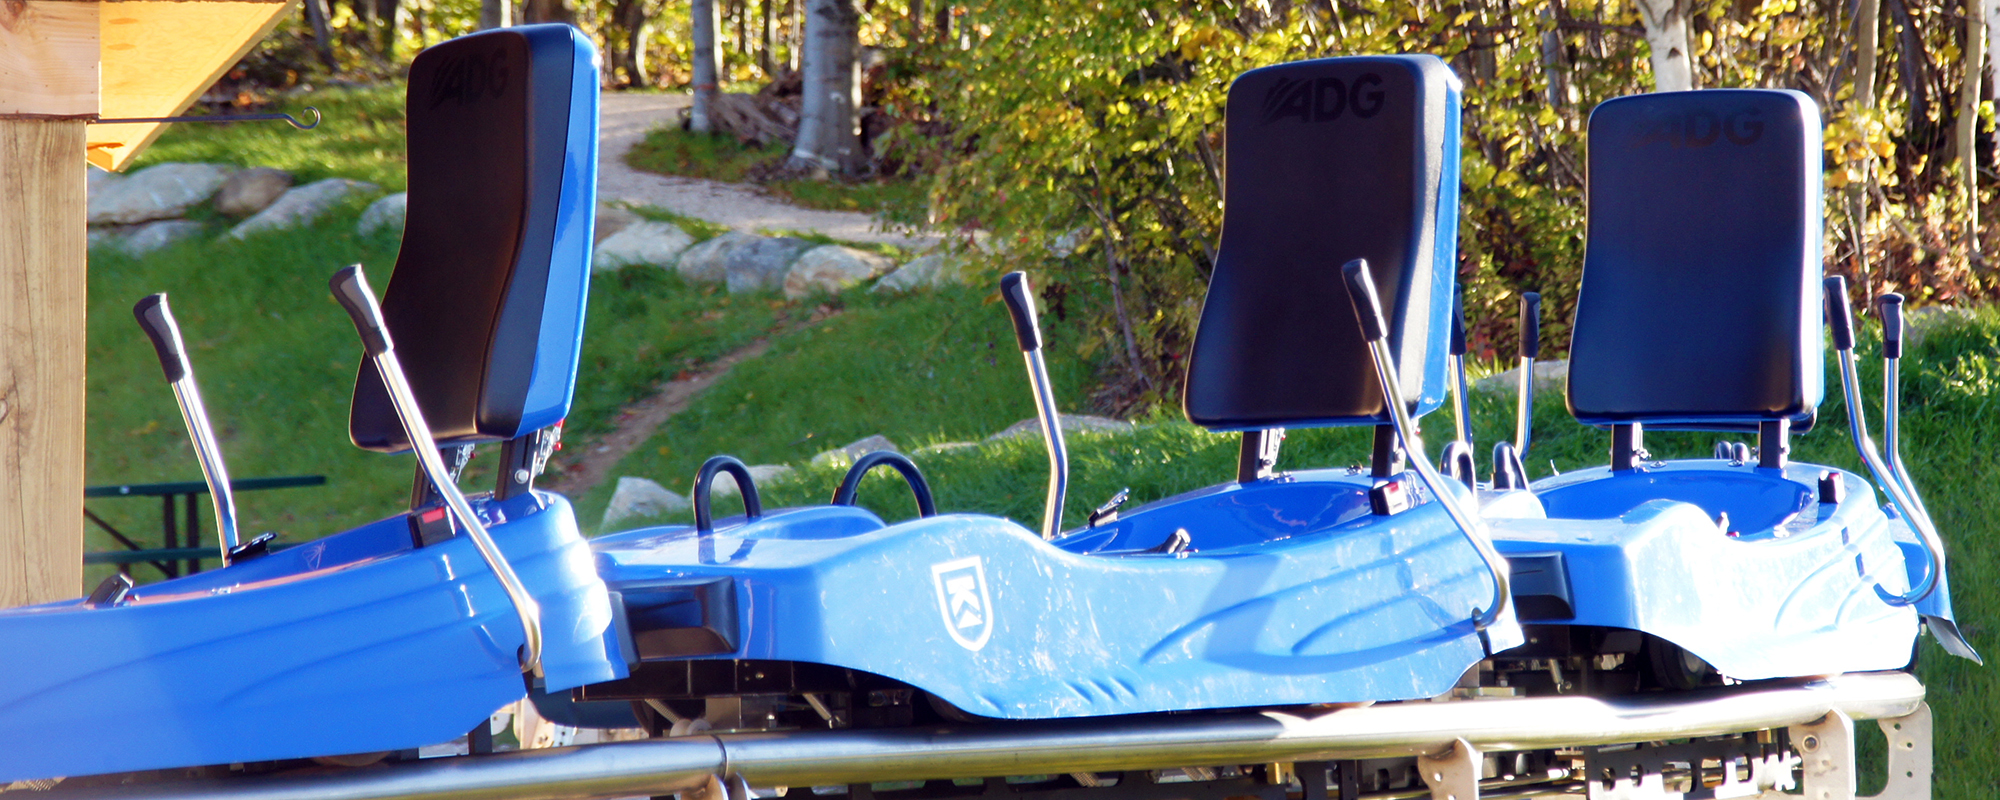 Three blue mountain coaster carts side by side.